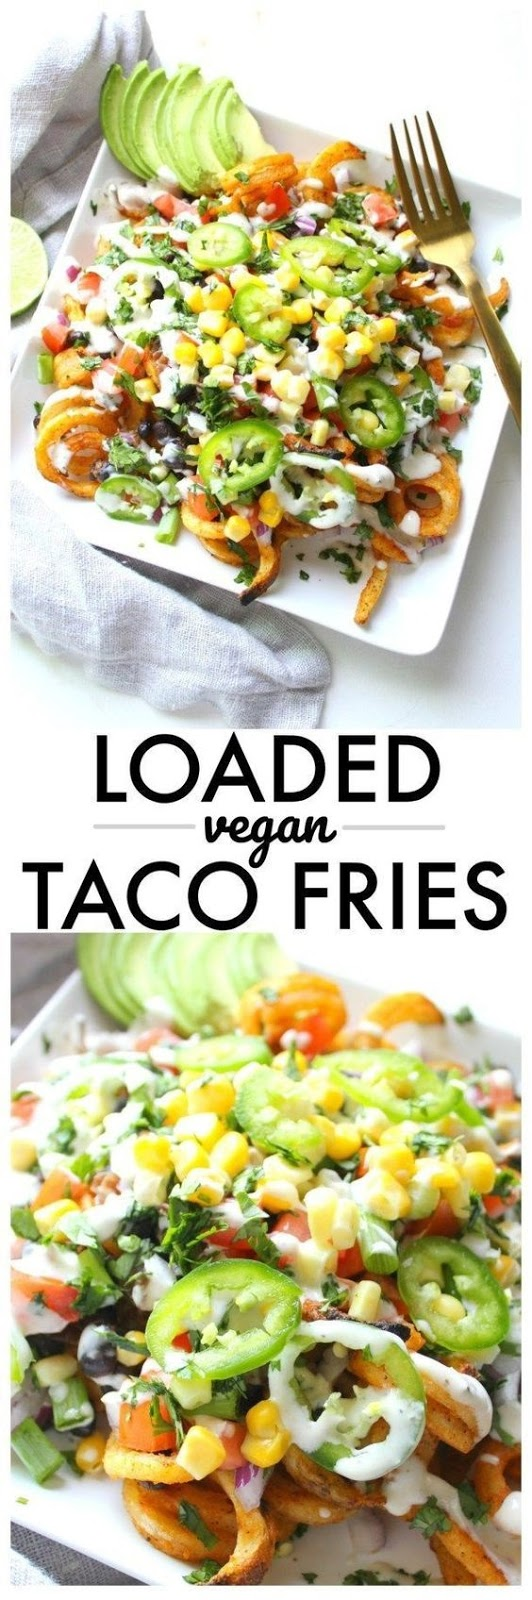 Loaded Vegan Taco Fries